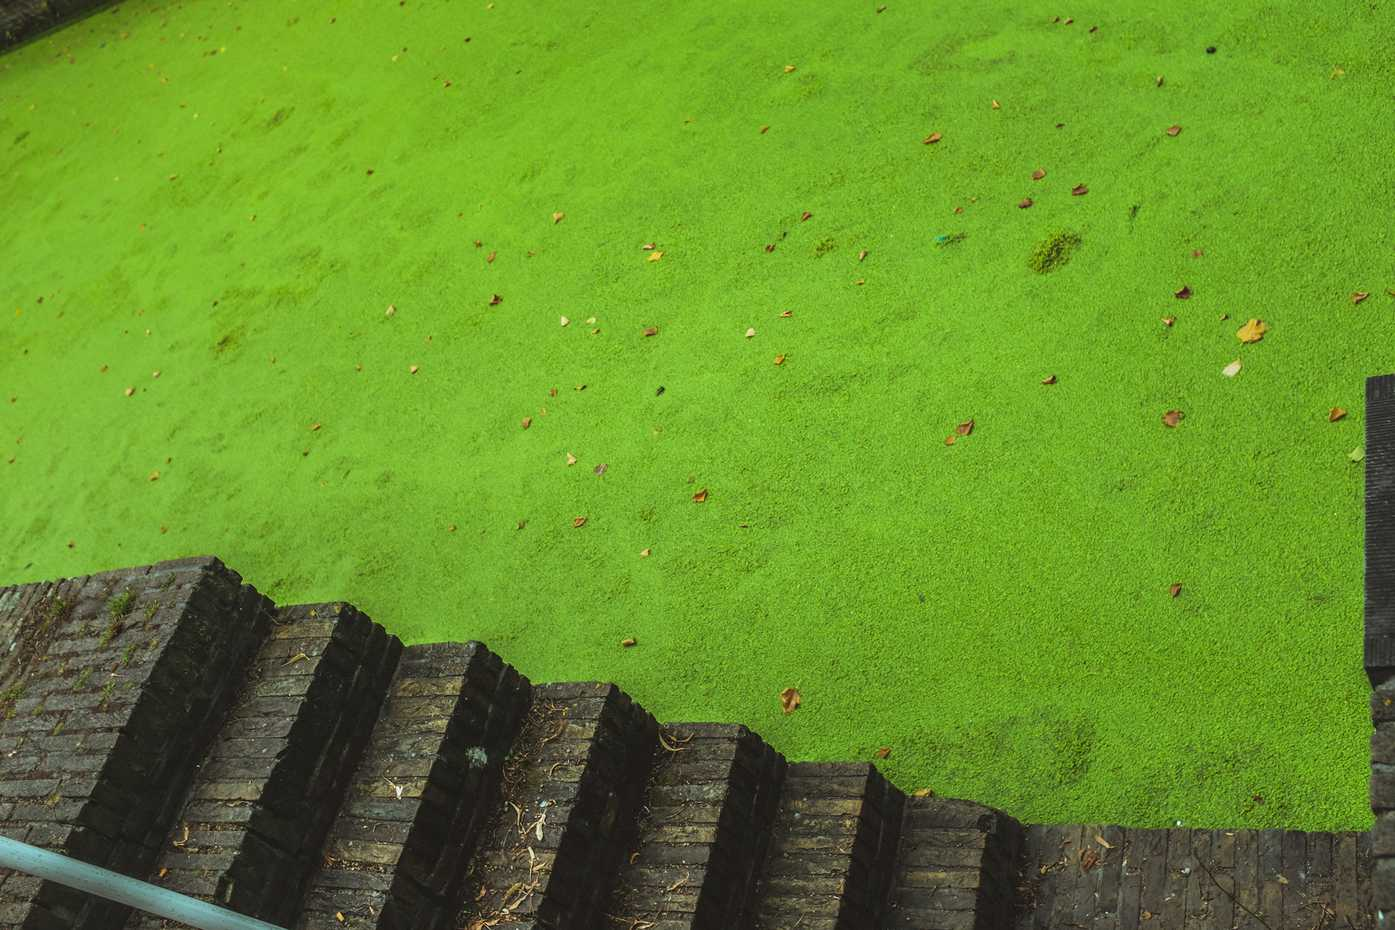 A canal covered in bright-green duckweed